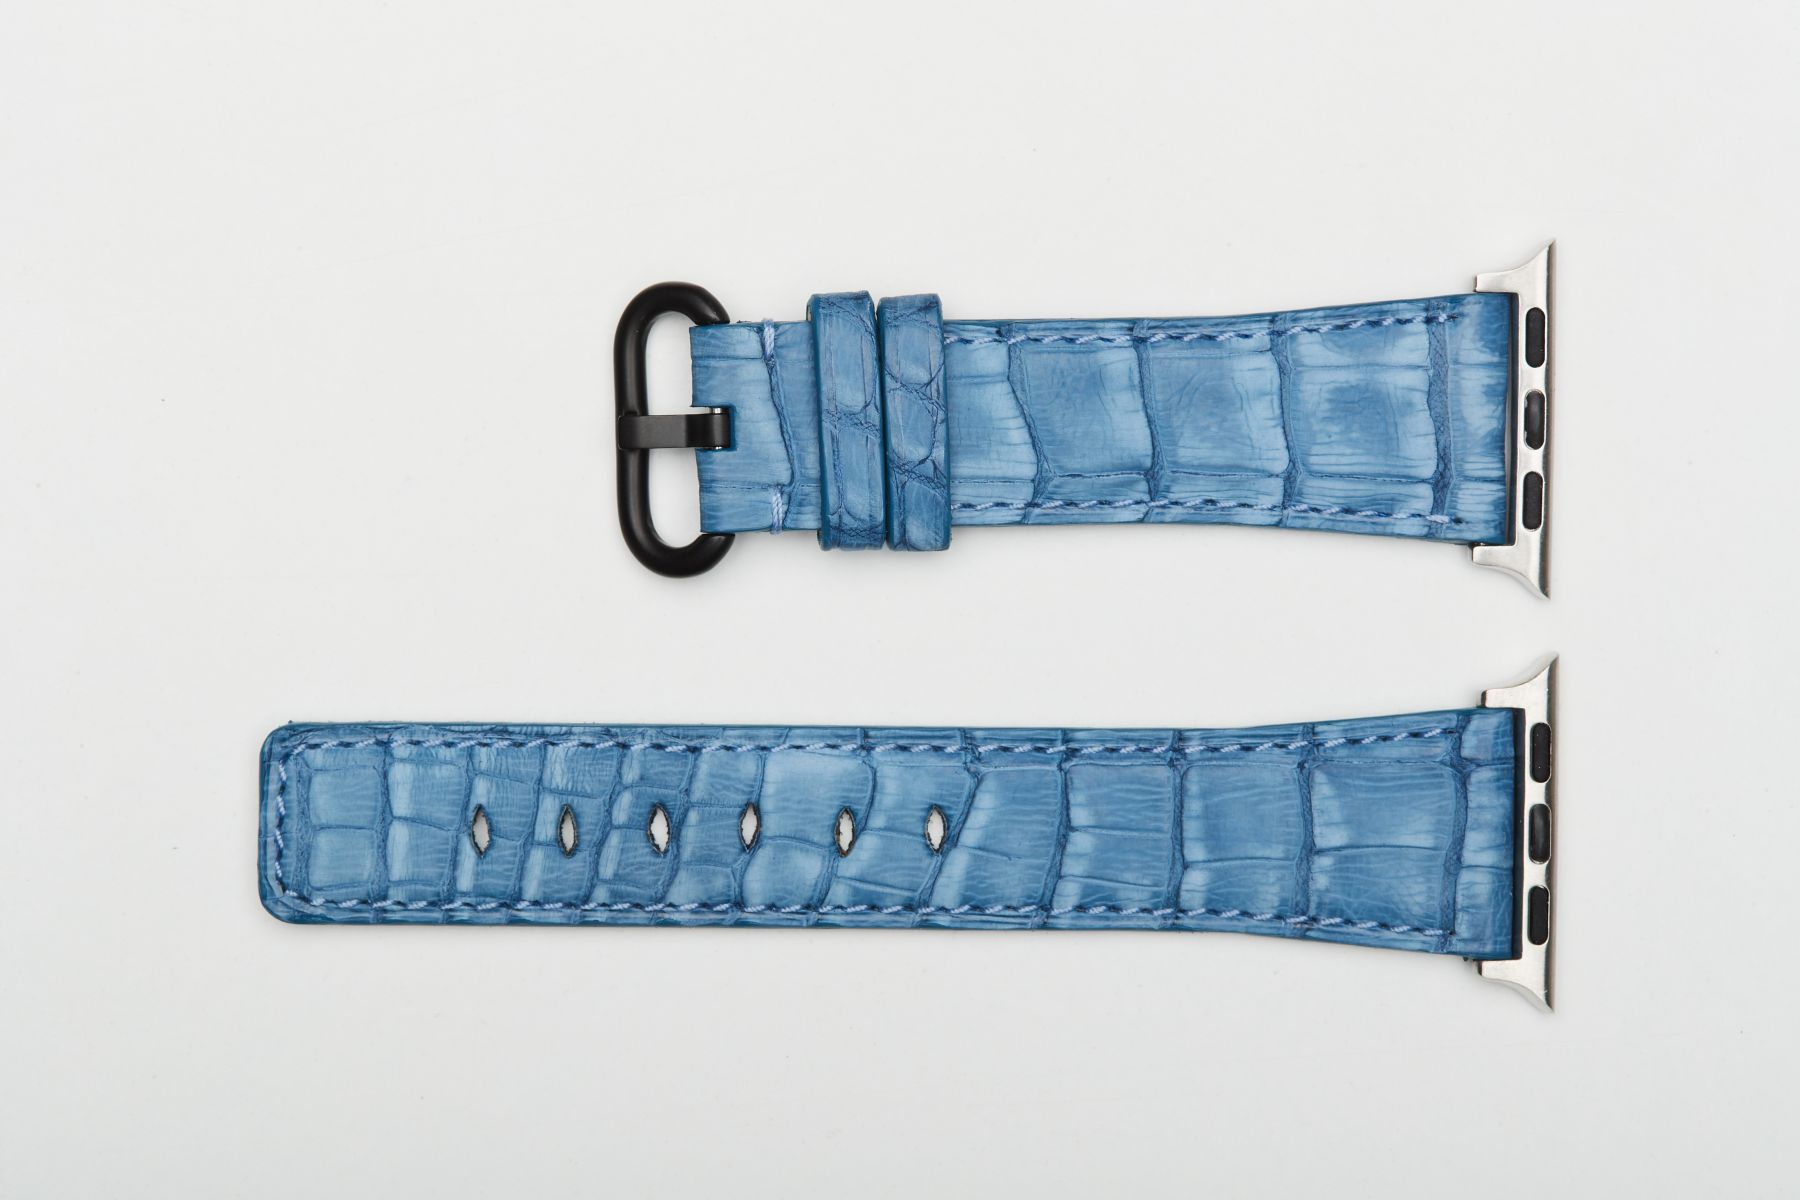 Blue Jeans Nubuck Caiman Latirostris Exotic leather watch strap for Apple Watch 40mm, 38mm (All generations)